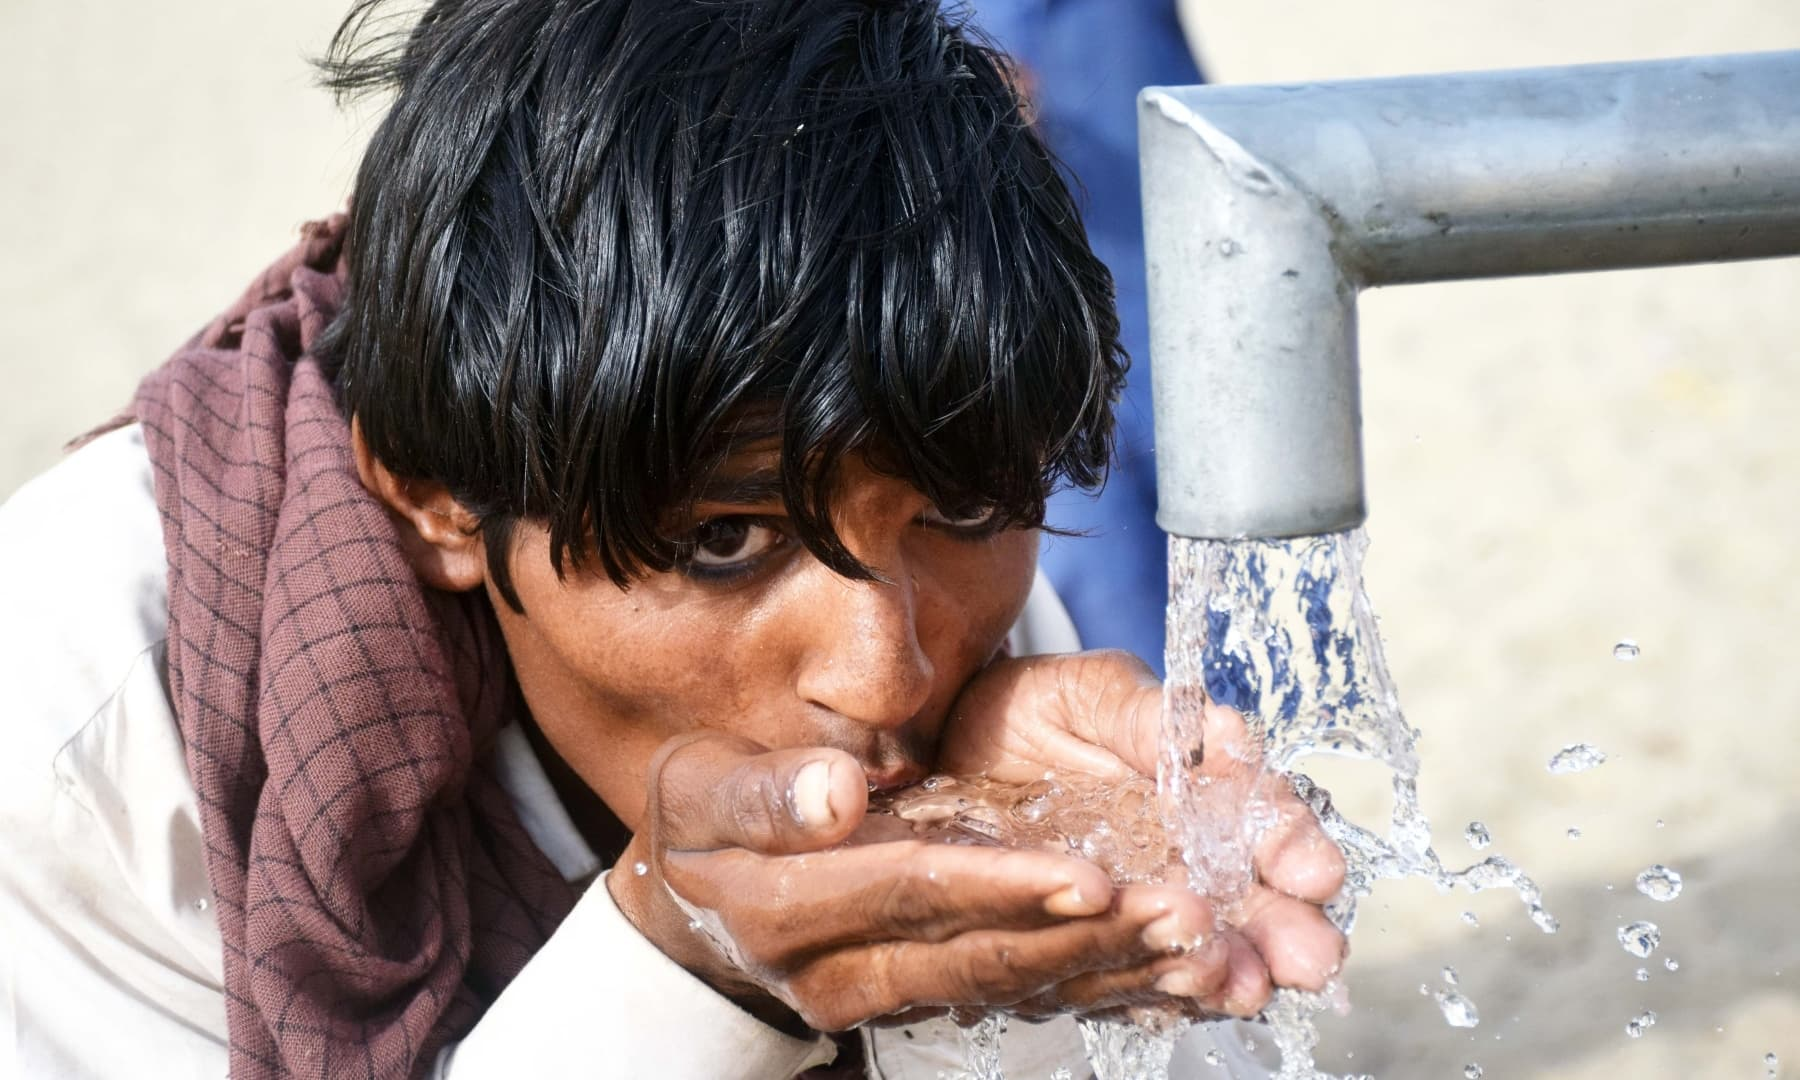 A man drinks water from a well in Achhro Thar, Khipro, Sindh. — Photo by Umair Ali